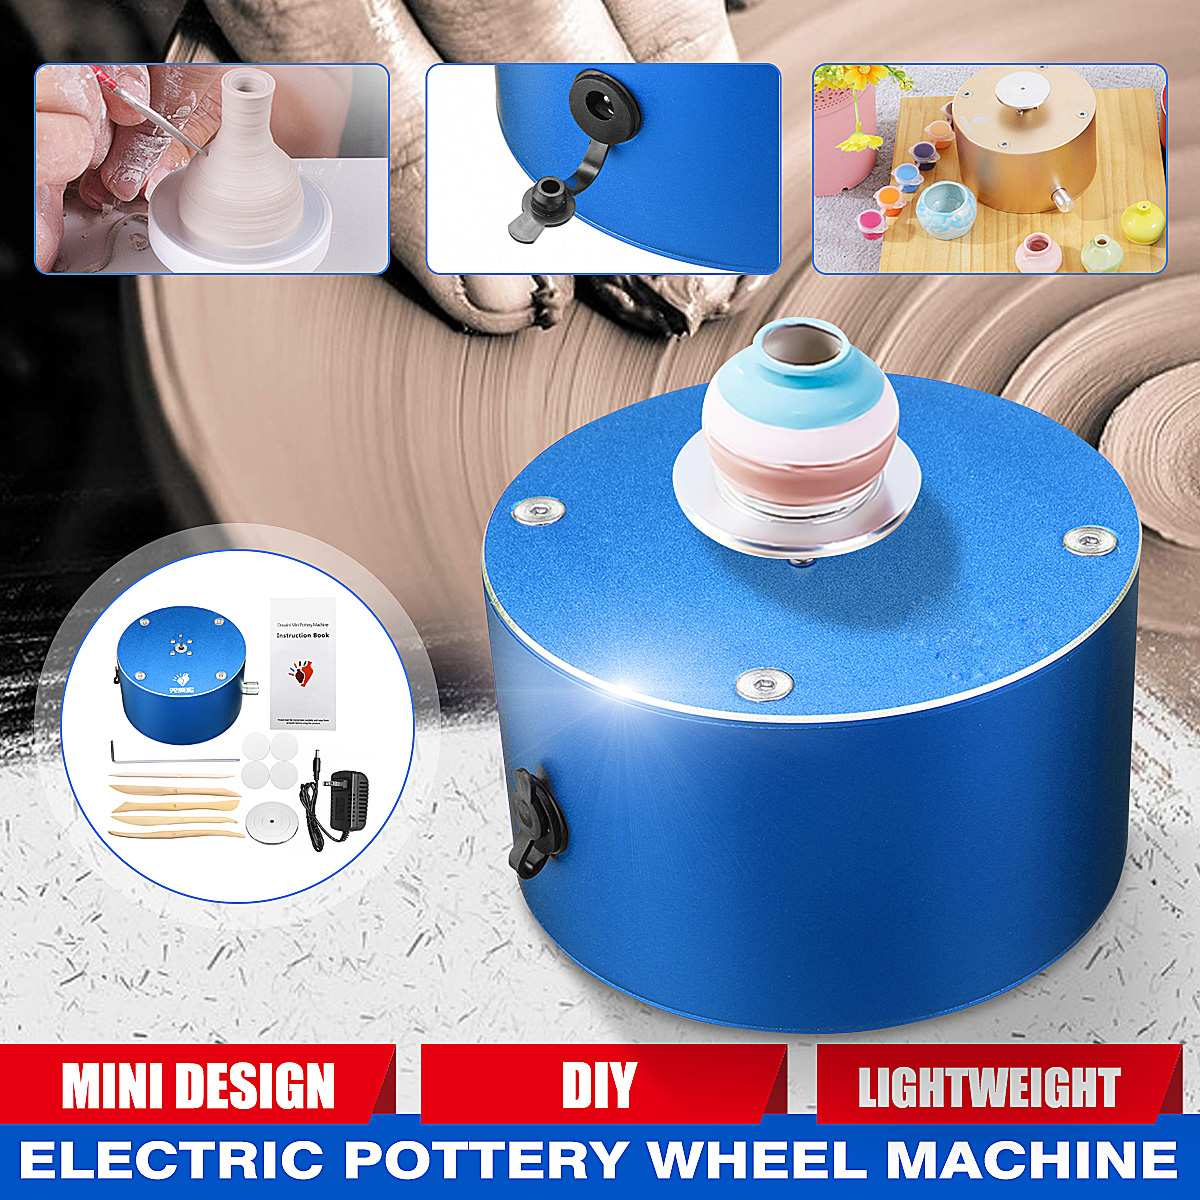 Turning Electric Pottery Wheel Ceramic Machine 12V 1500Rpm DIY Ceramic Clay Pottery Making Tool Kit With Turntable